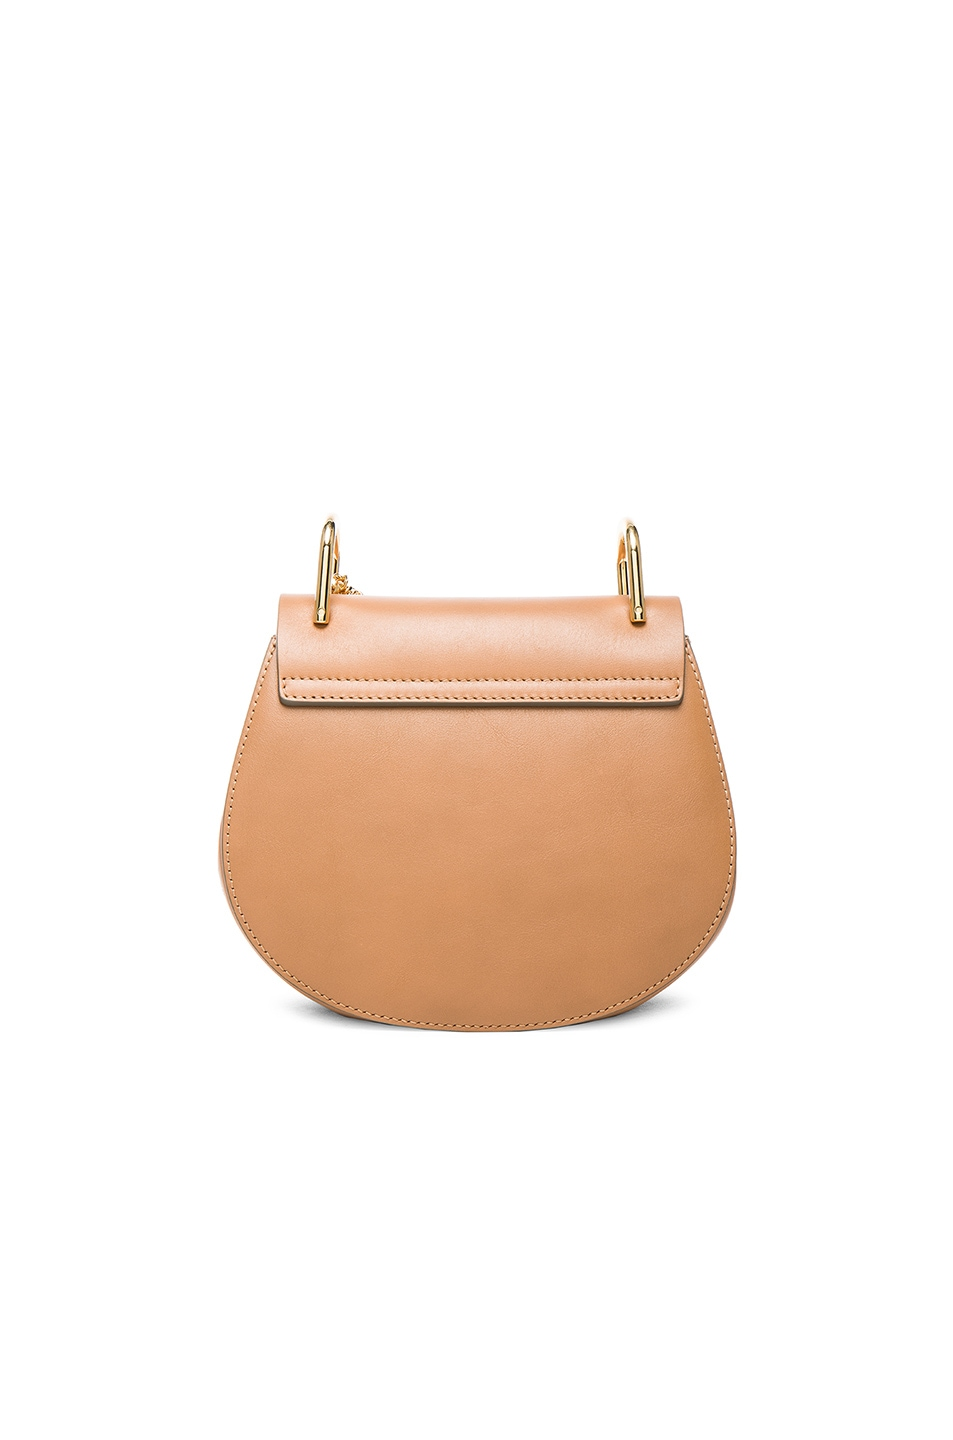 Image 3 of Chloe Mini Drew Leather & Suede Bag in Milky Coffee